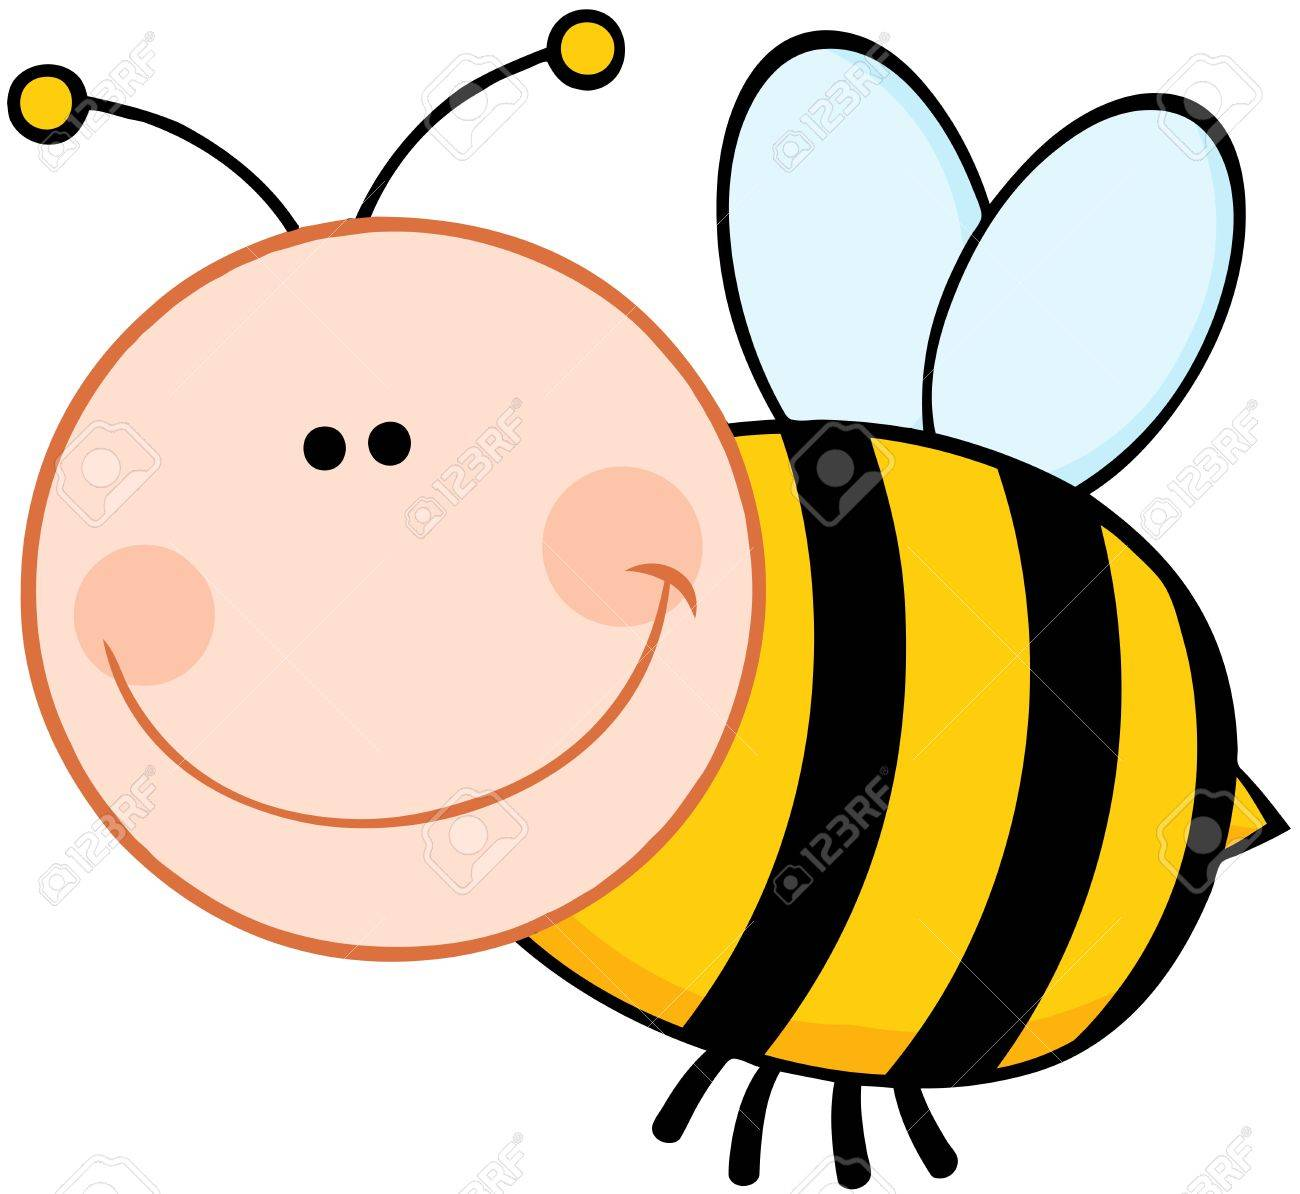 smiling bumble bee cartoon mascot character flying royalty free rh 123rf com Bumble Bee Drawing Bumble Bee Clip Art